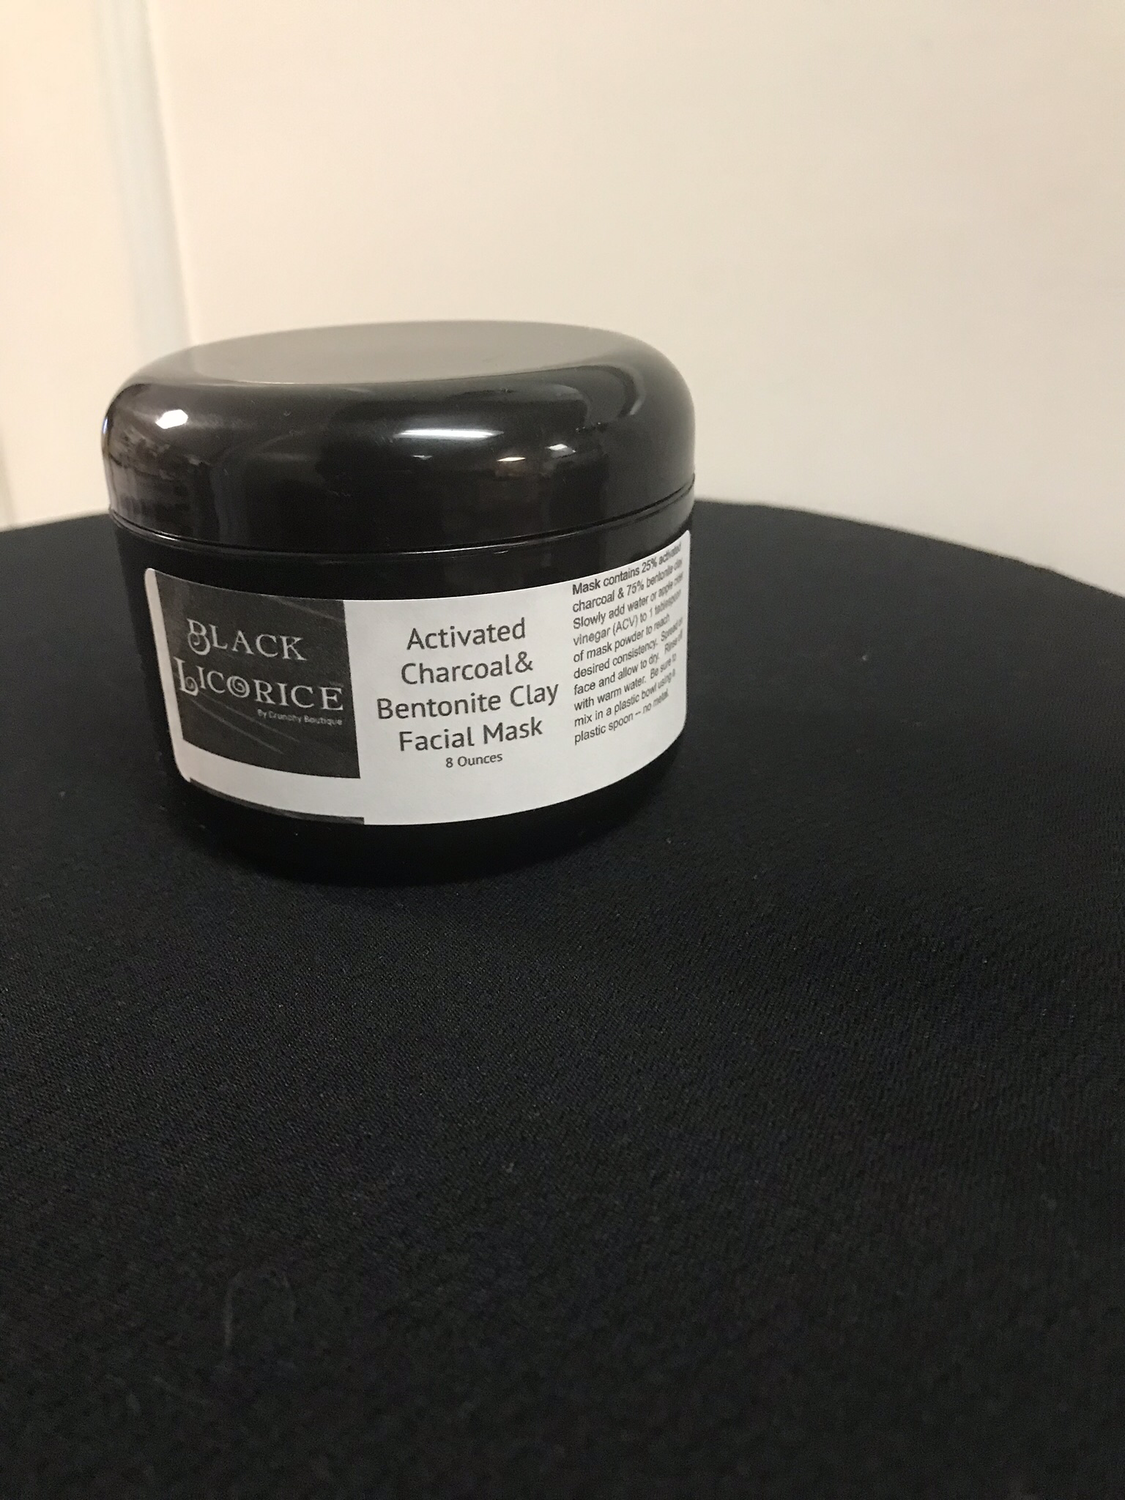 Black Licorice Charcoal & Clay Mask